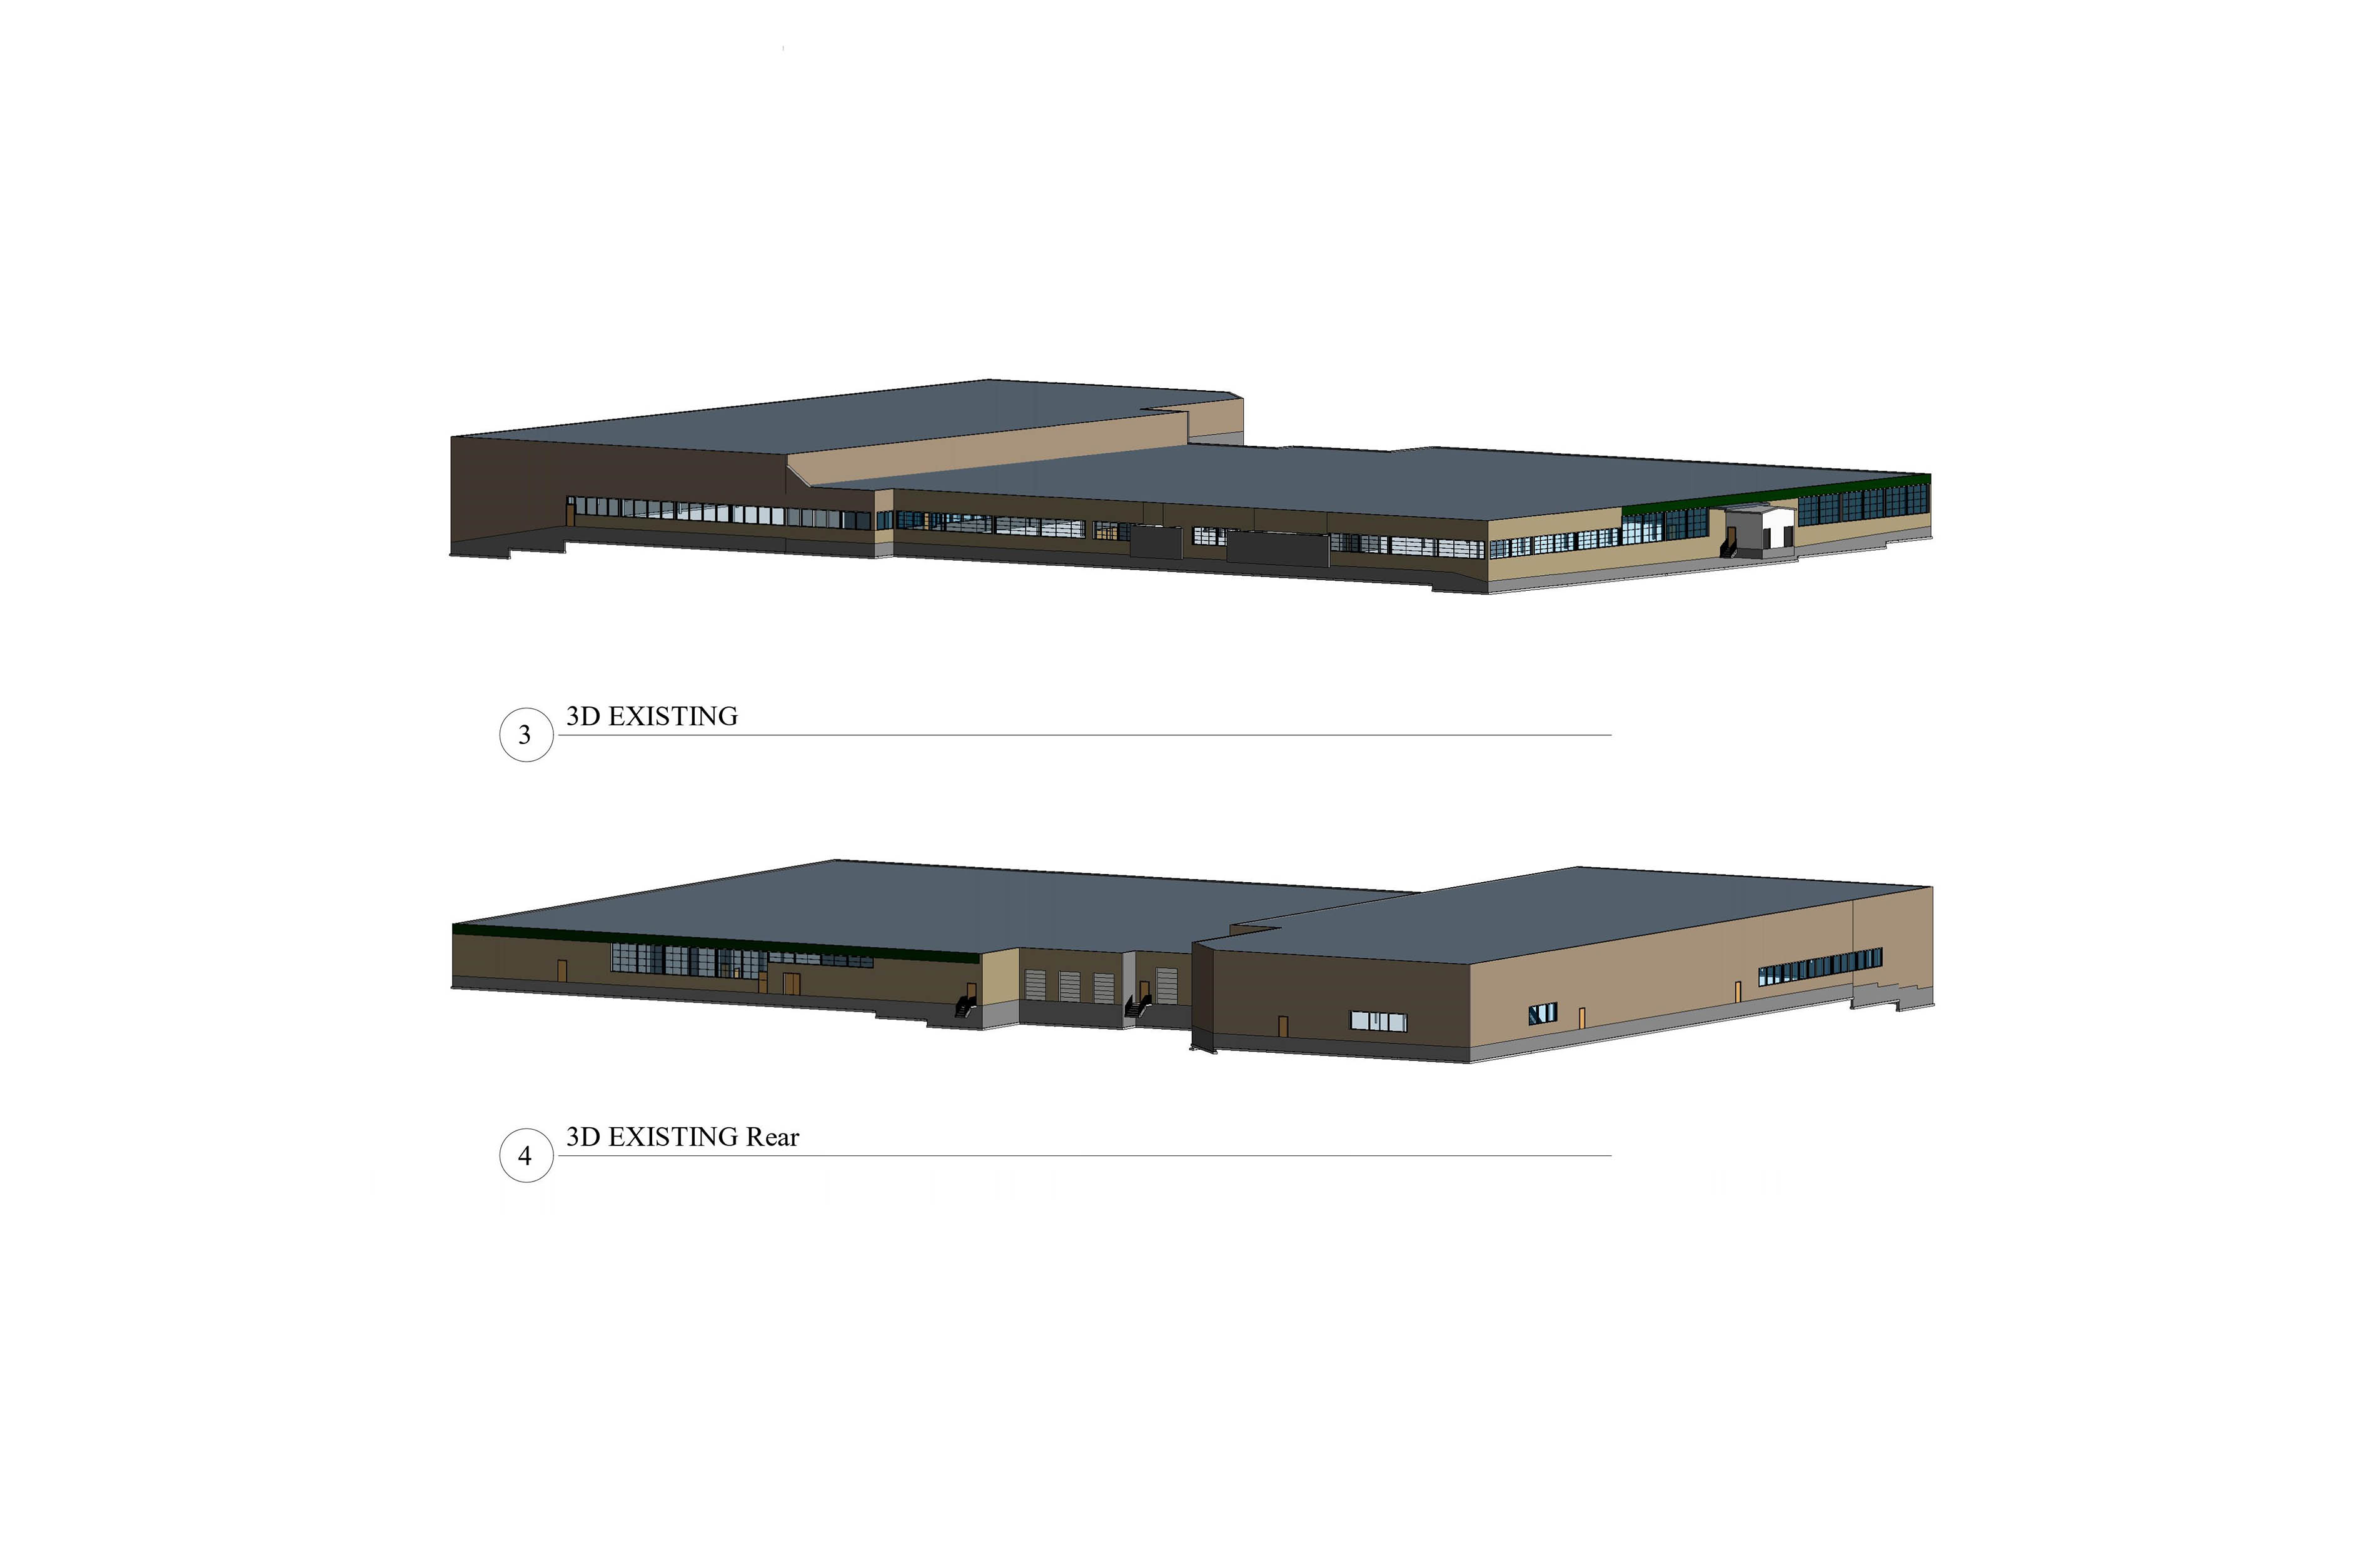 two 3D models of the front and rear end of the existing building.